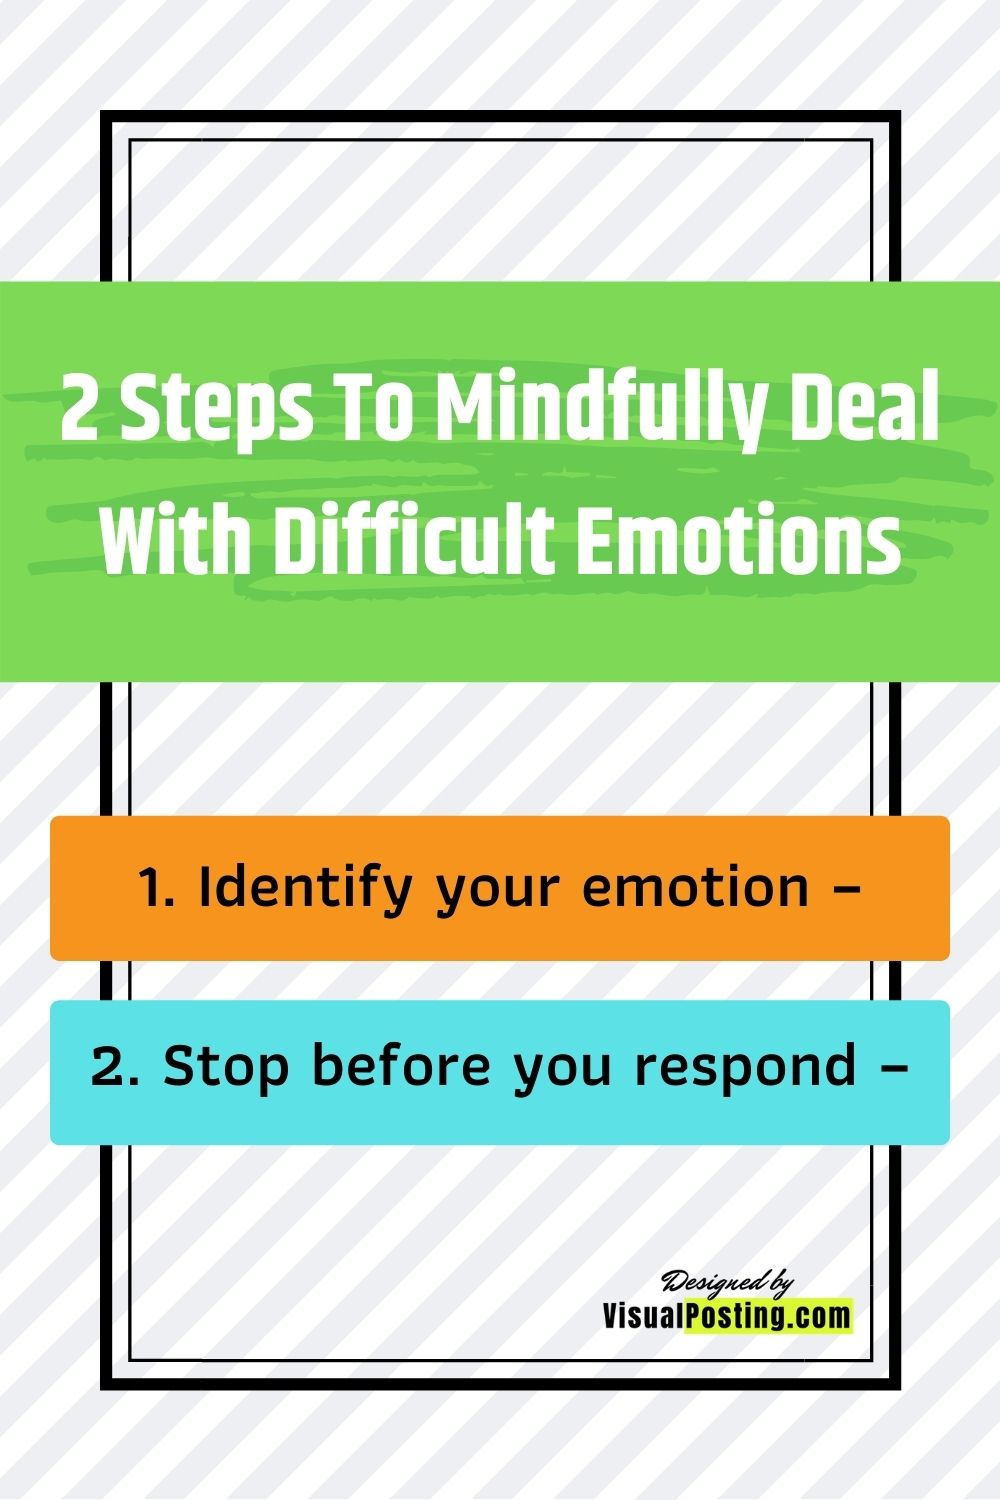 2 Steps To Mindfully Deal With Difficult Emotions.jpg